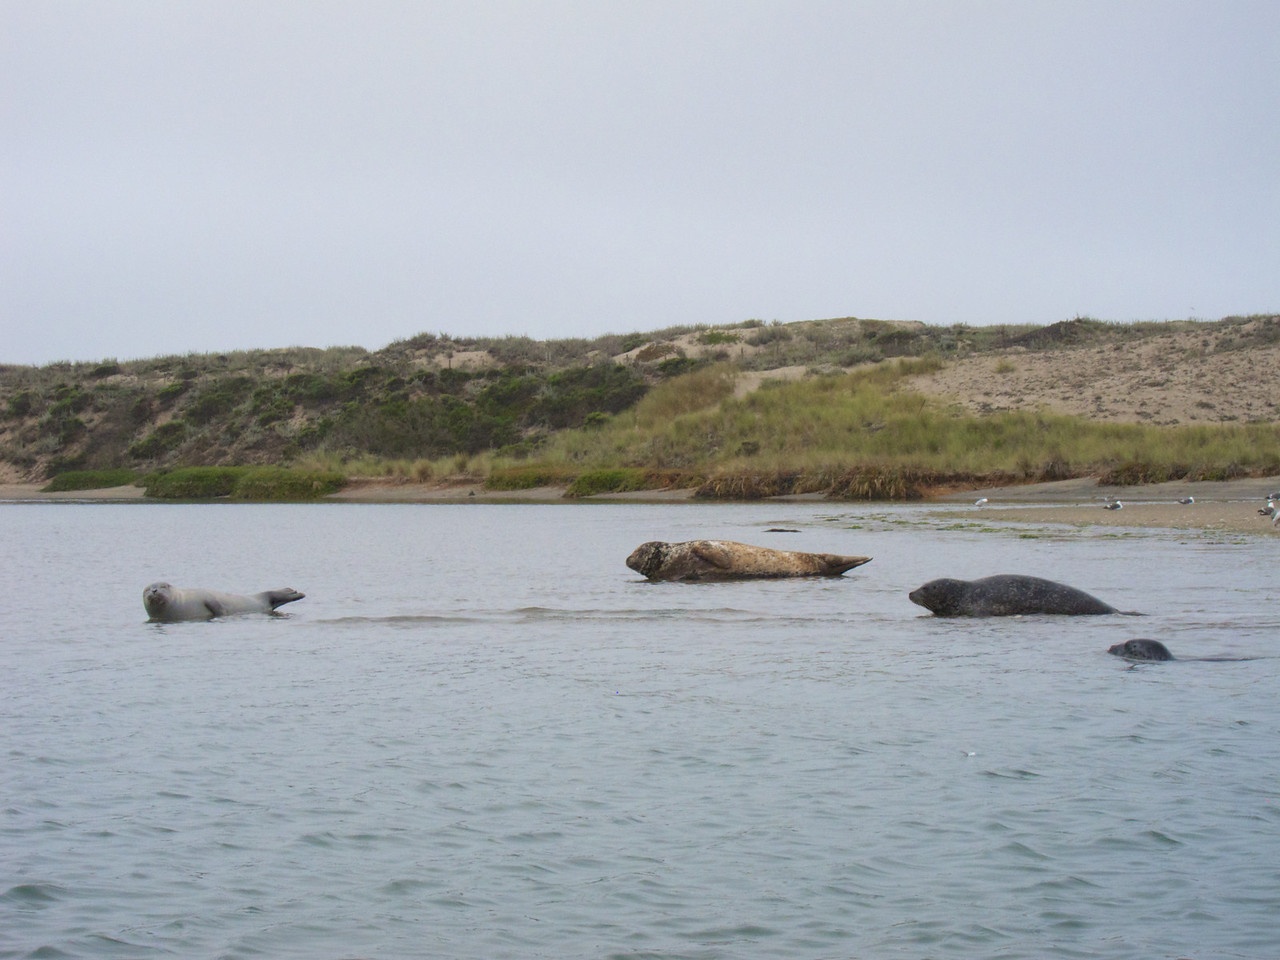 Some seals